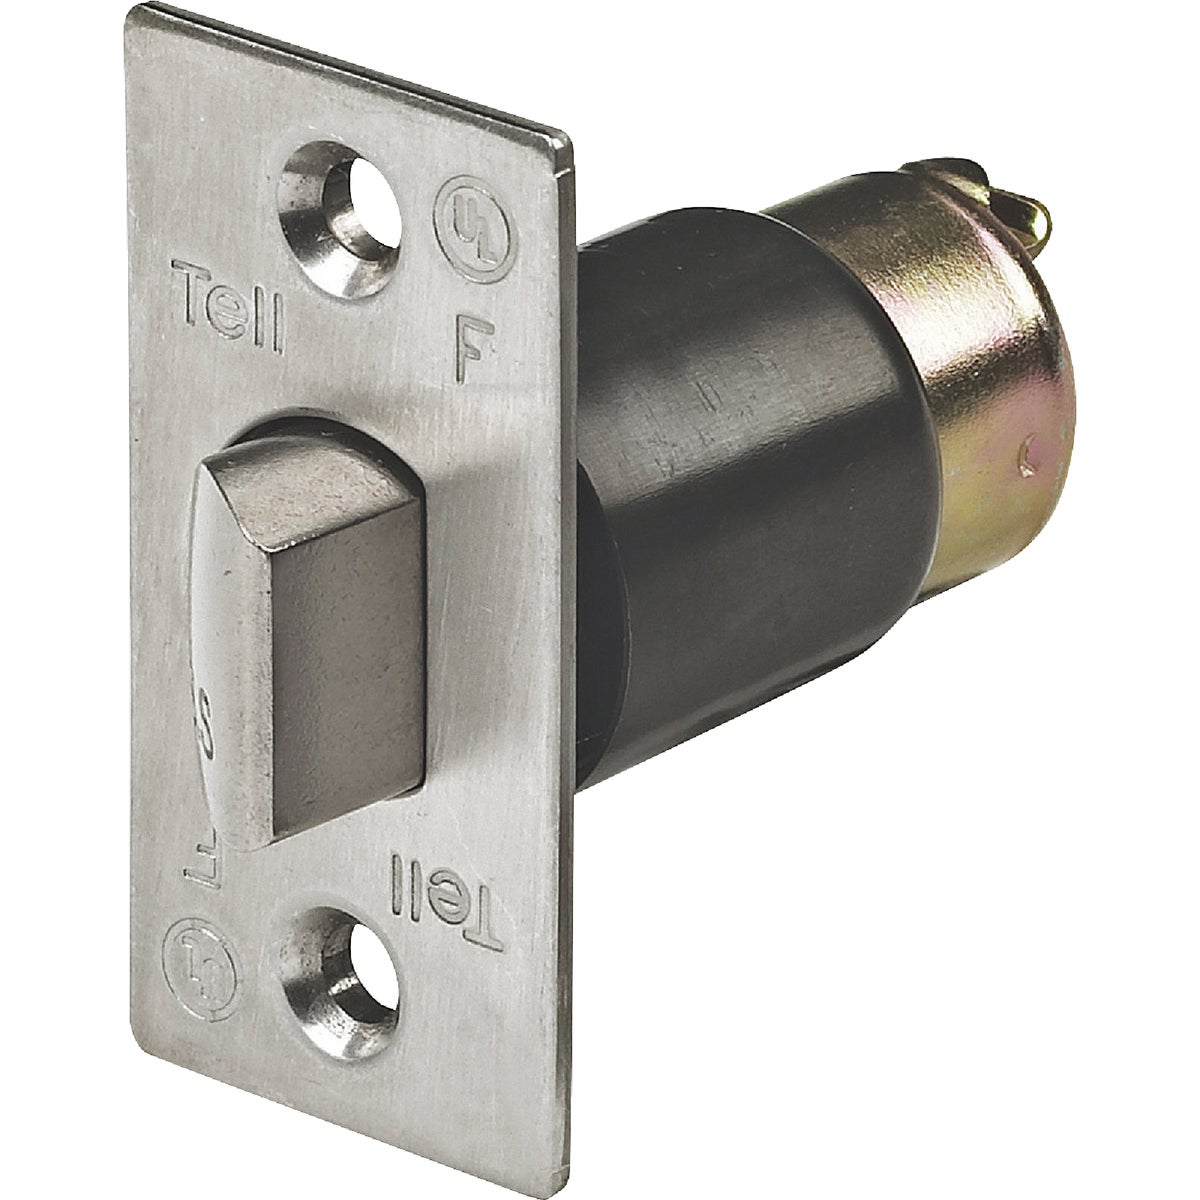 2-3/8 UNGUARDED LATCH - CL100185 by Tell Mfg Inc